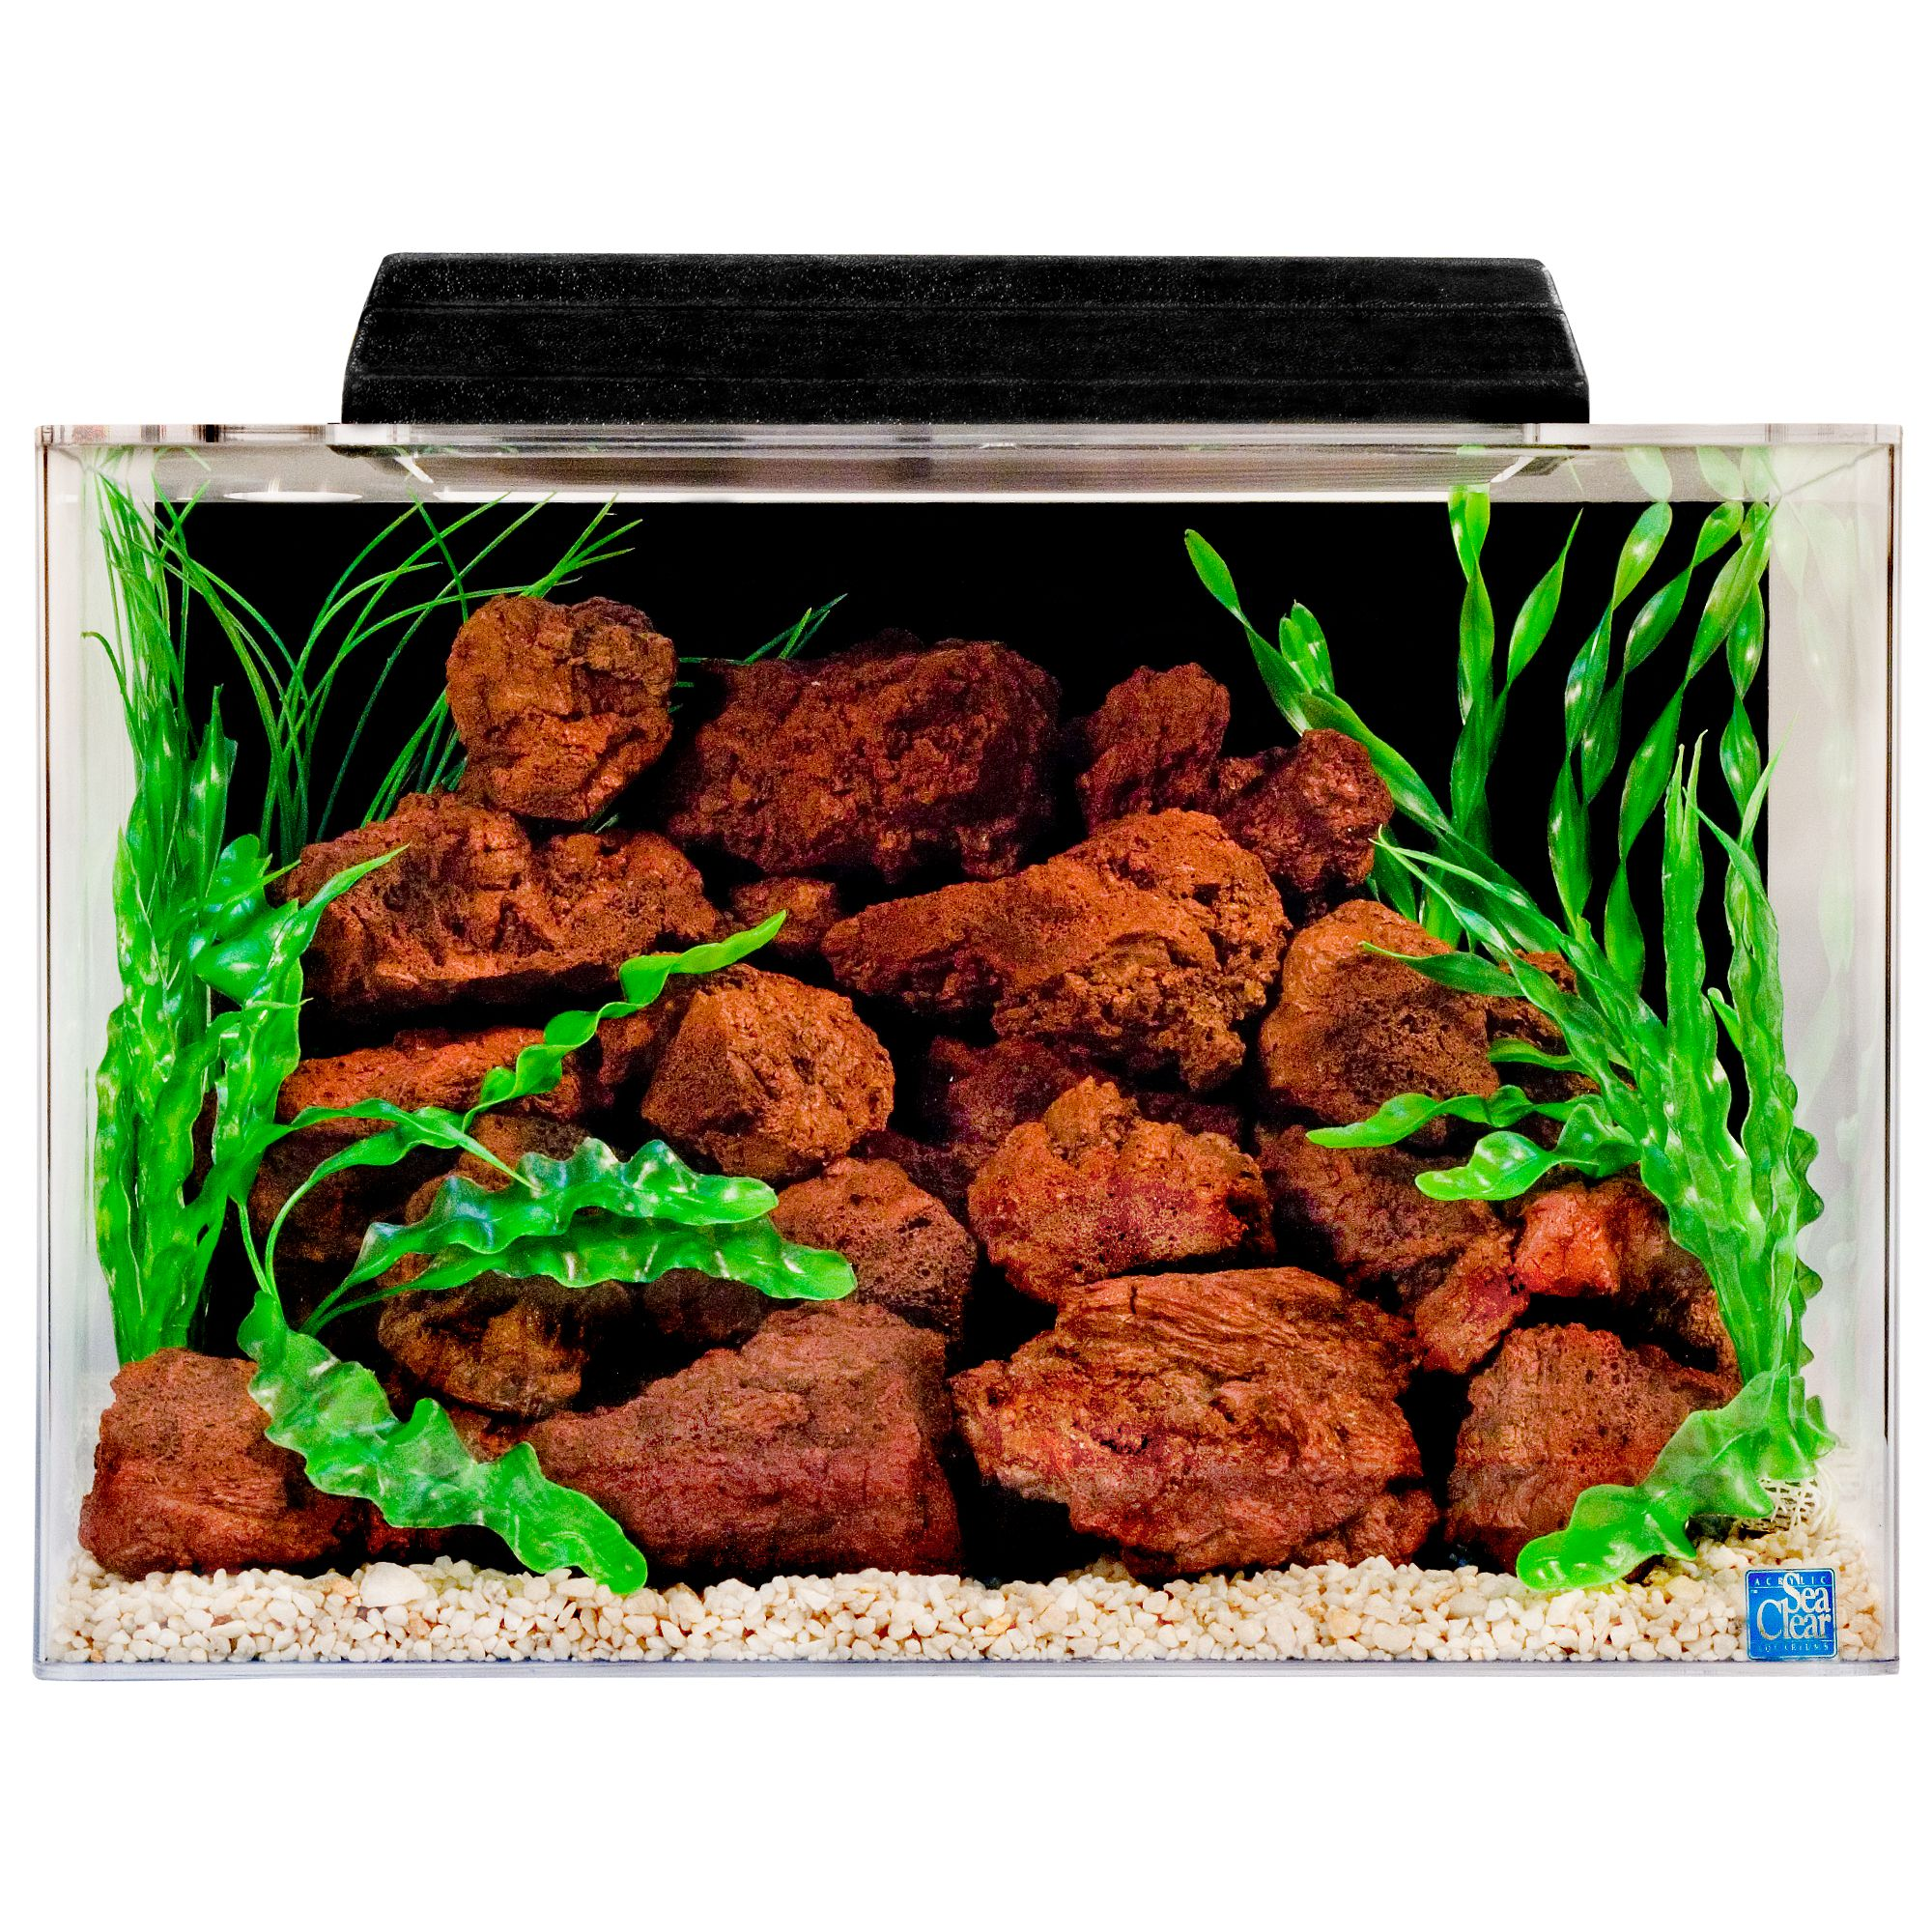 SeaClear 20 Gallon Aquarium and Hood size: 20 Gal, Black, North American Pet Products 5074025